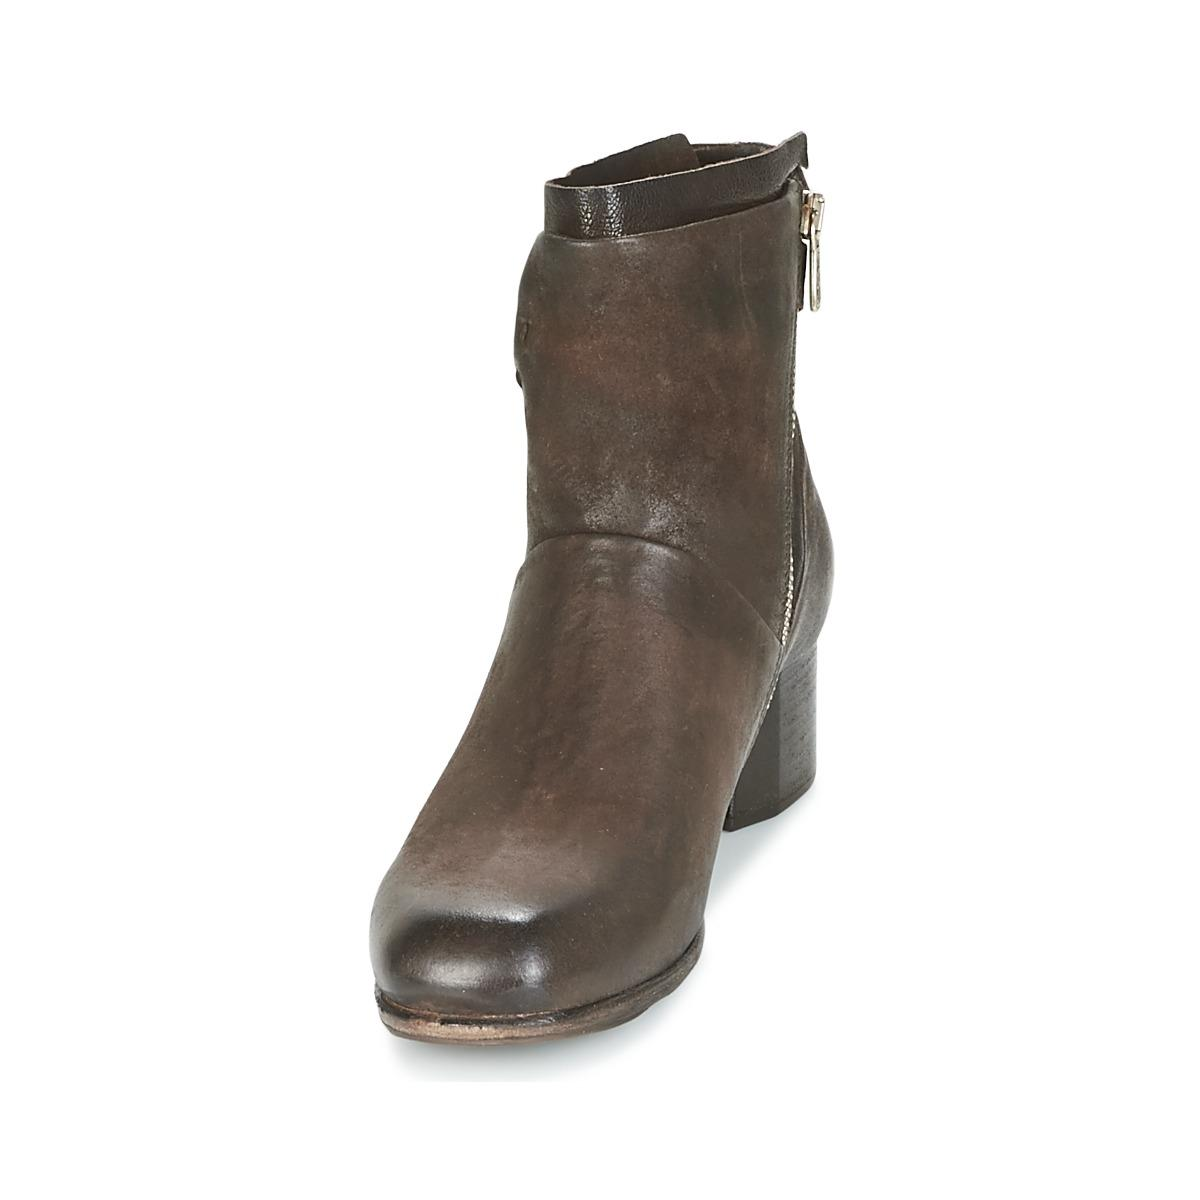 A.s.98 Este Mid Boots in Brown - Save 1%